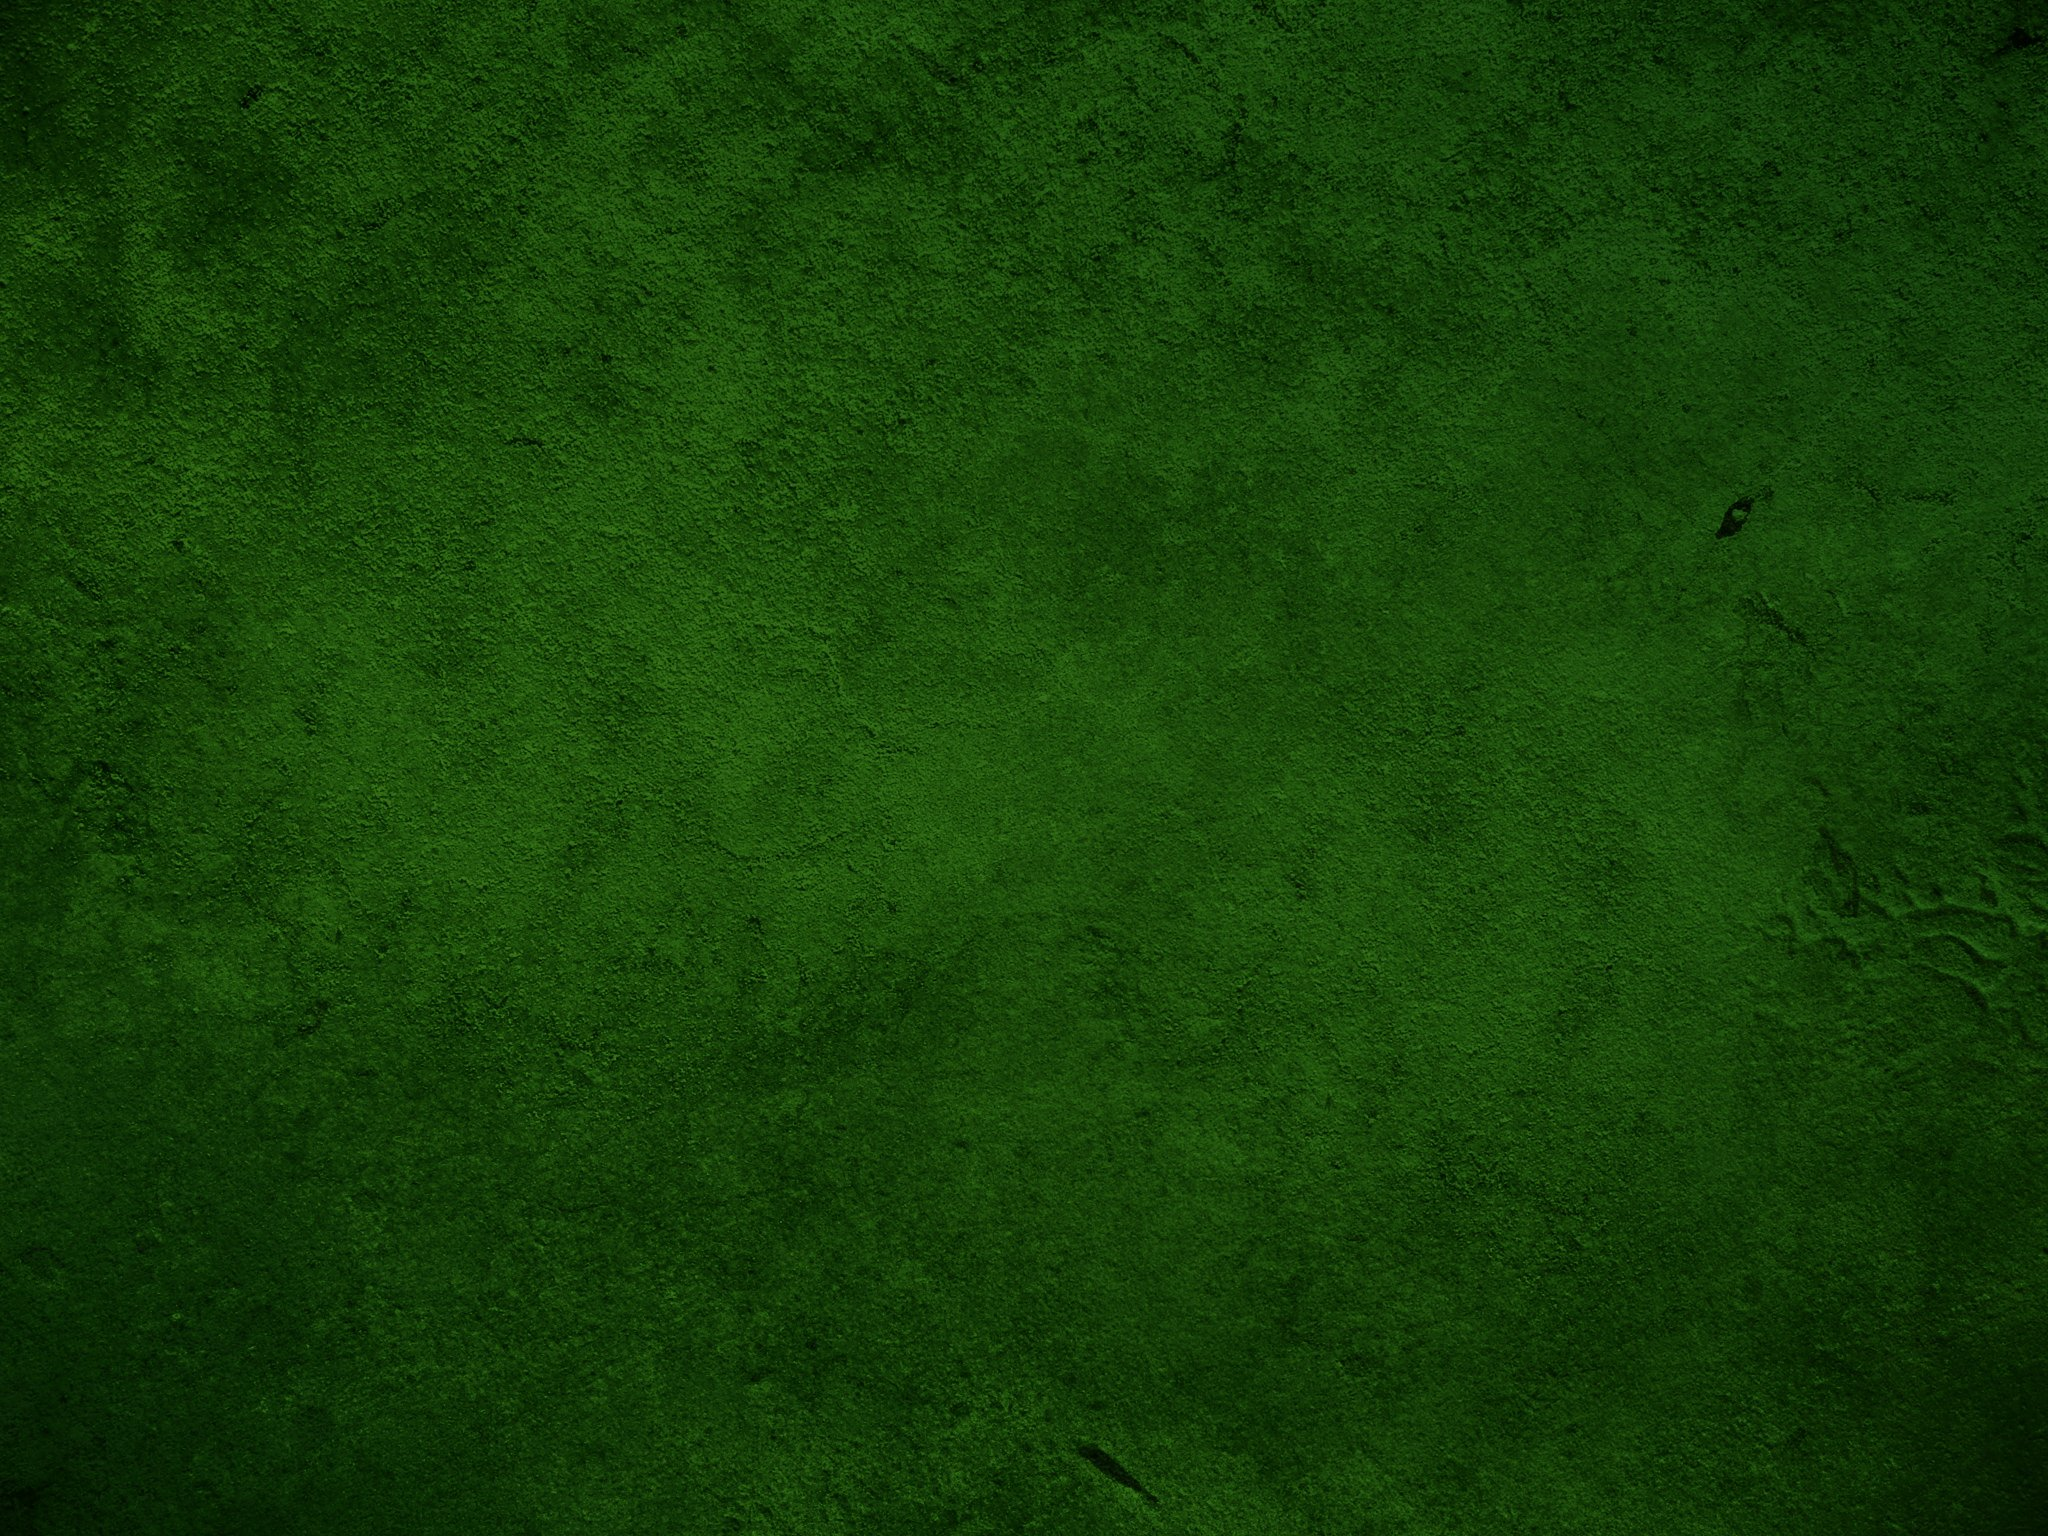 Green Background Images Wallpapersafari